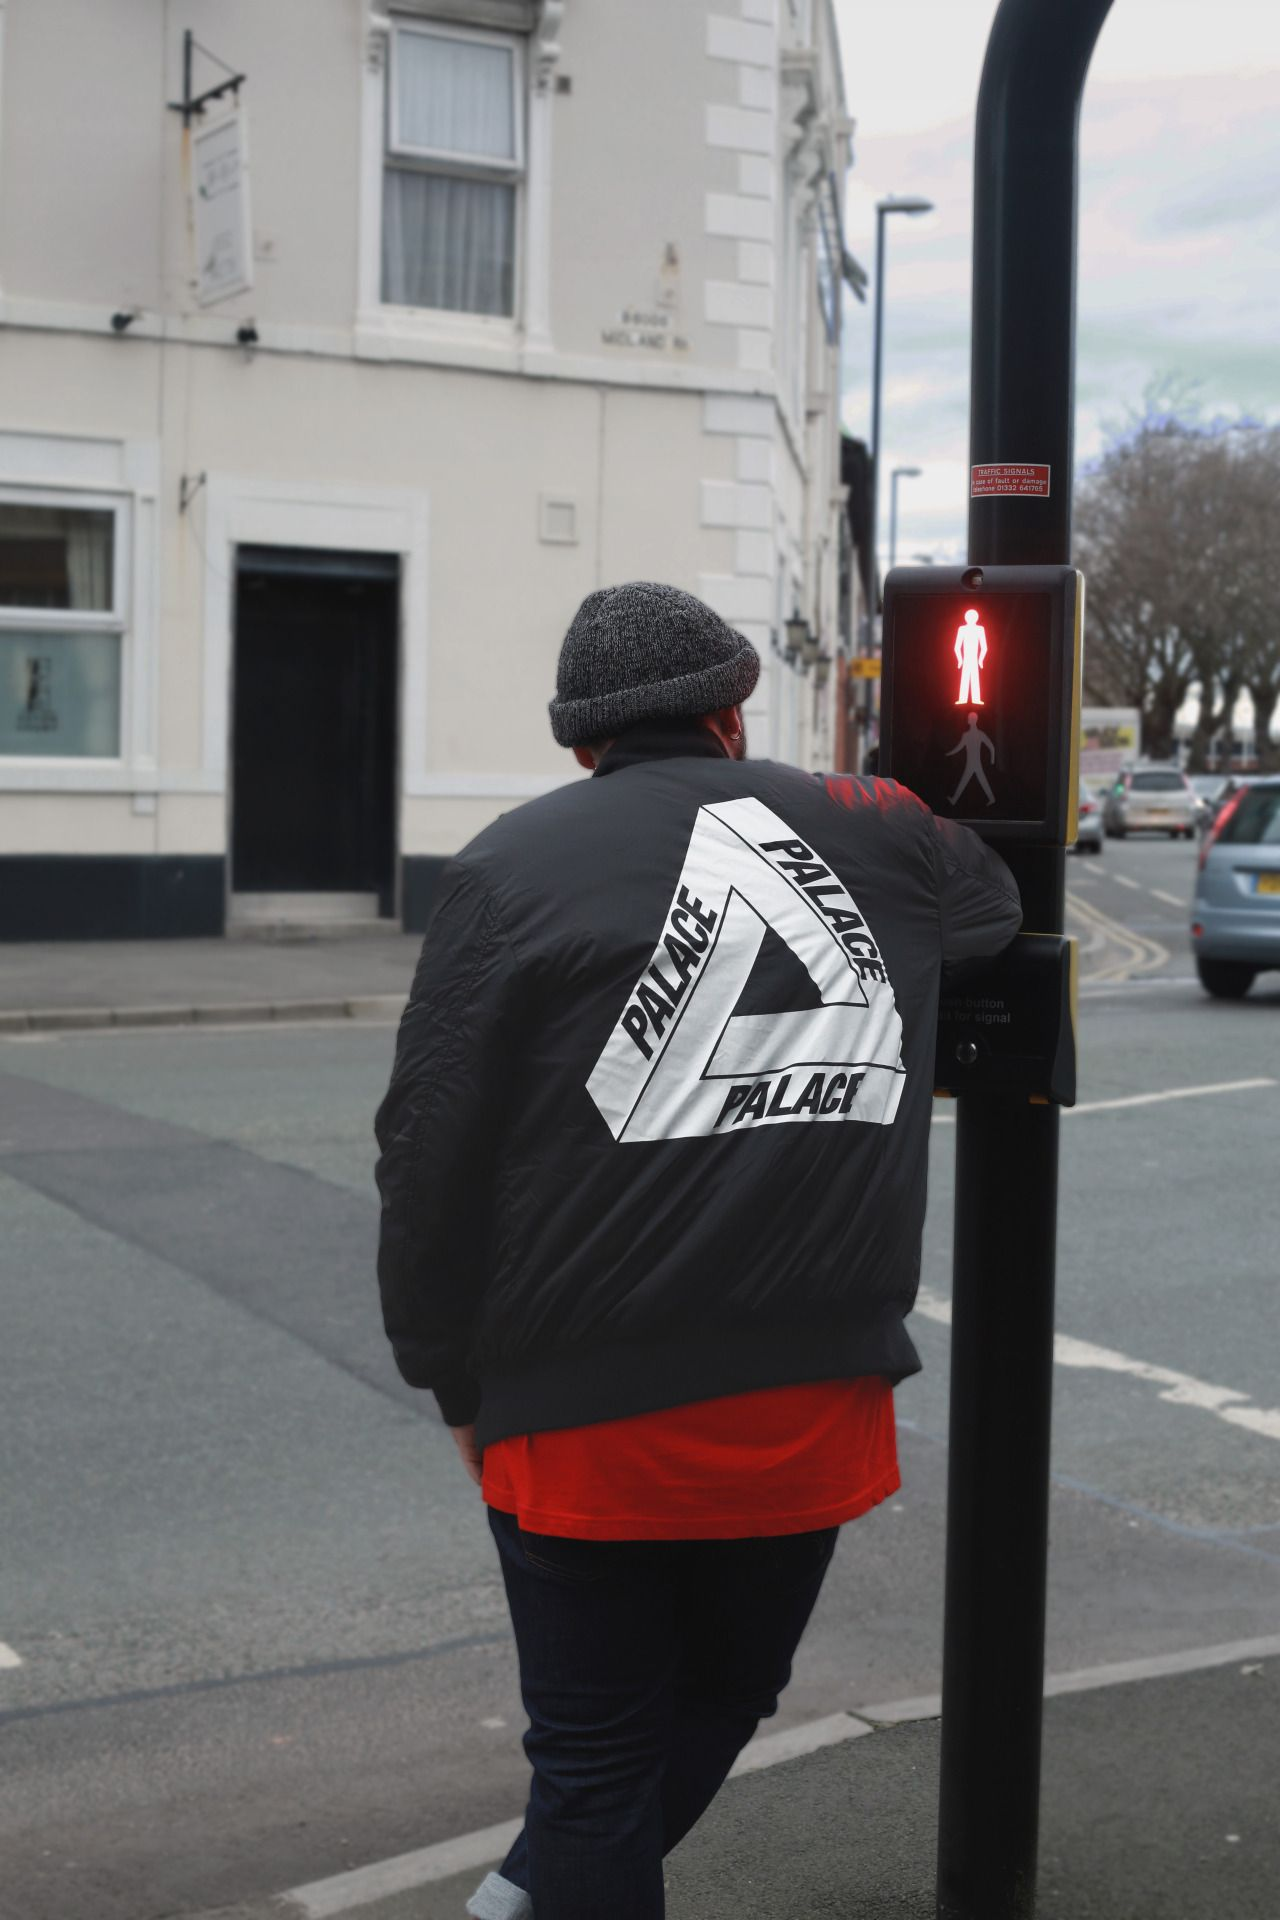 PALACE SKATEBOARDS - 2015